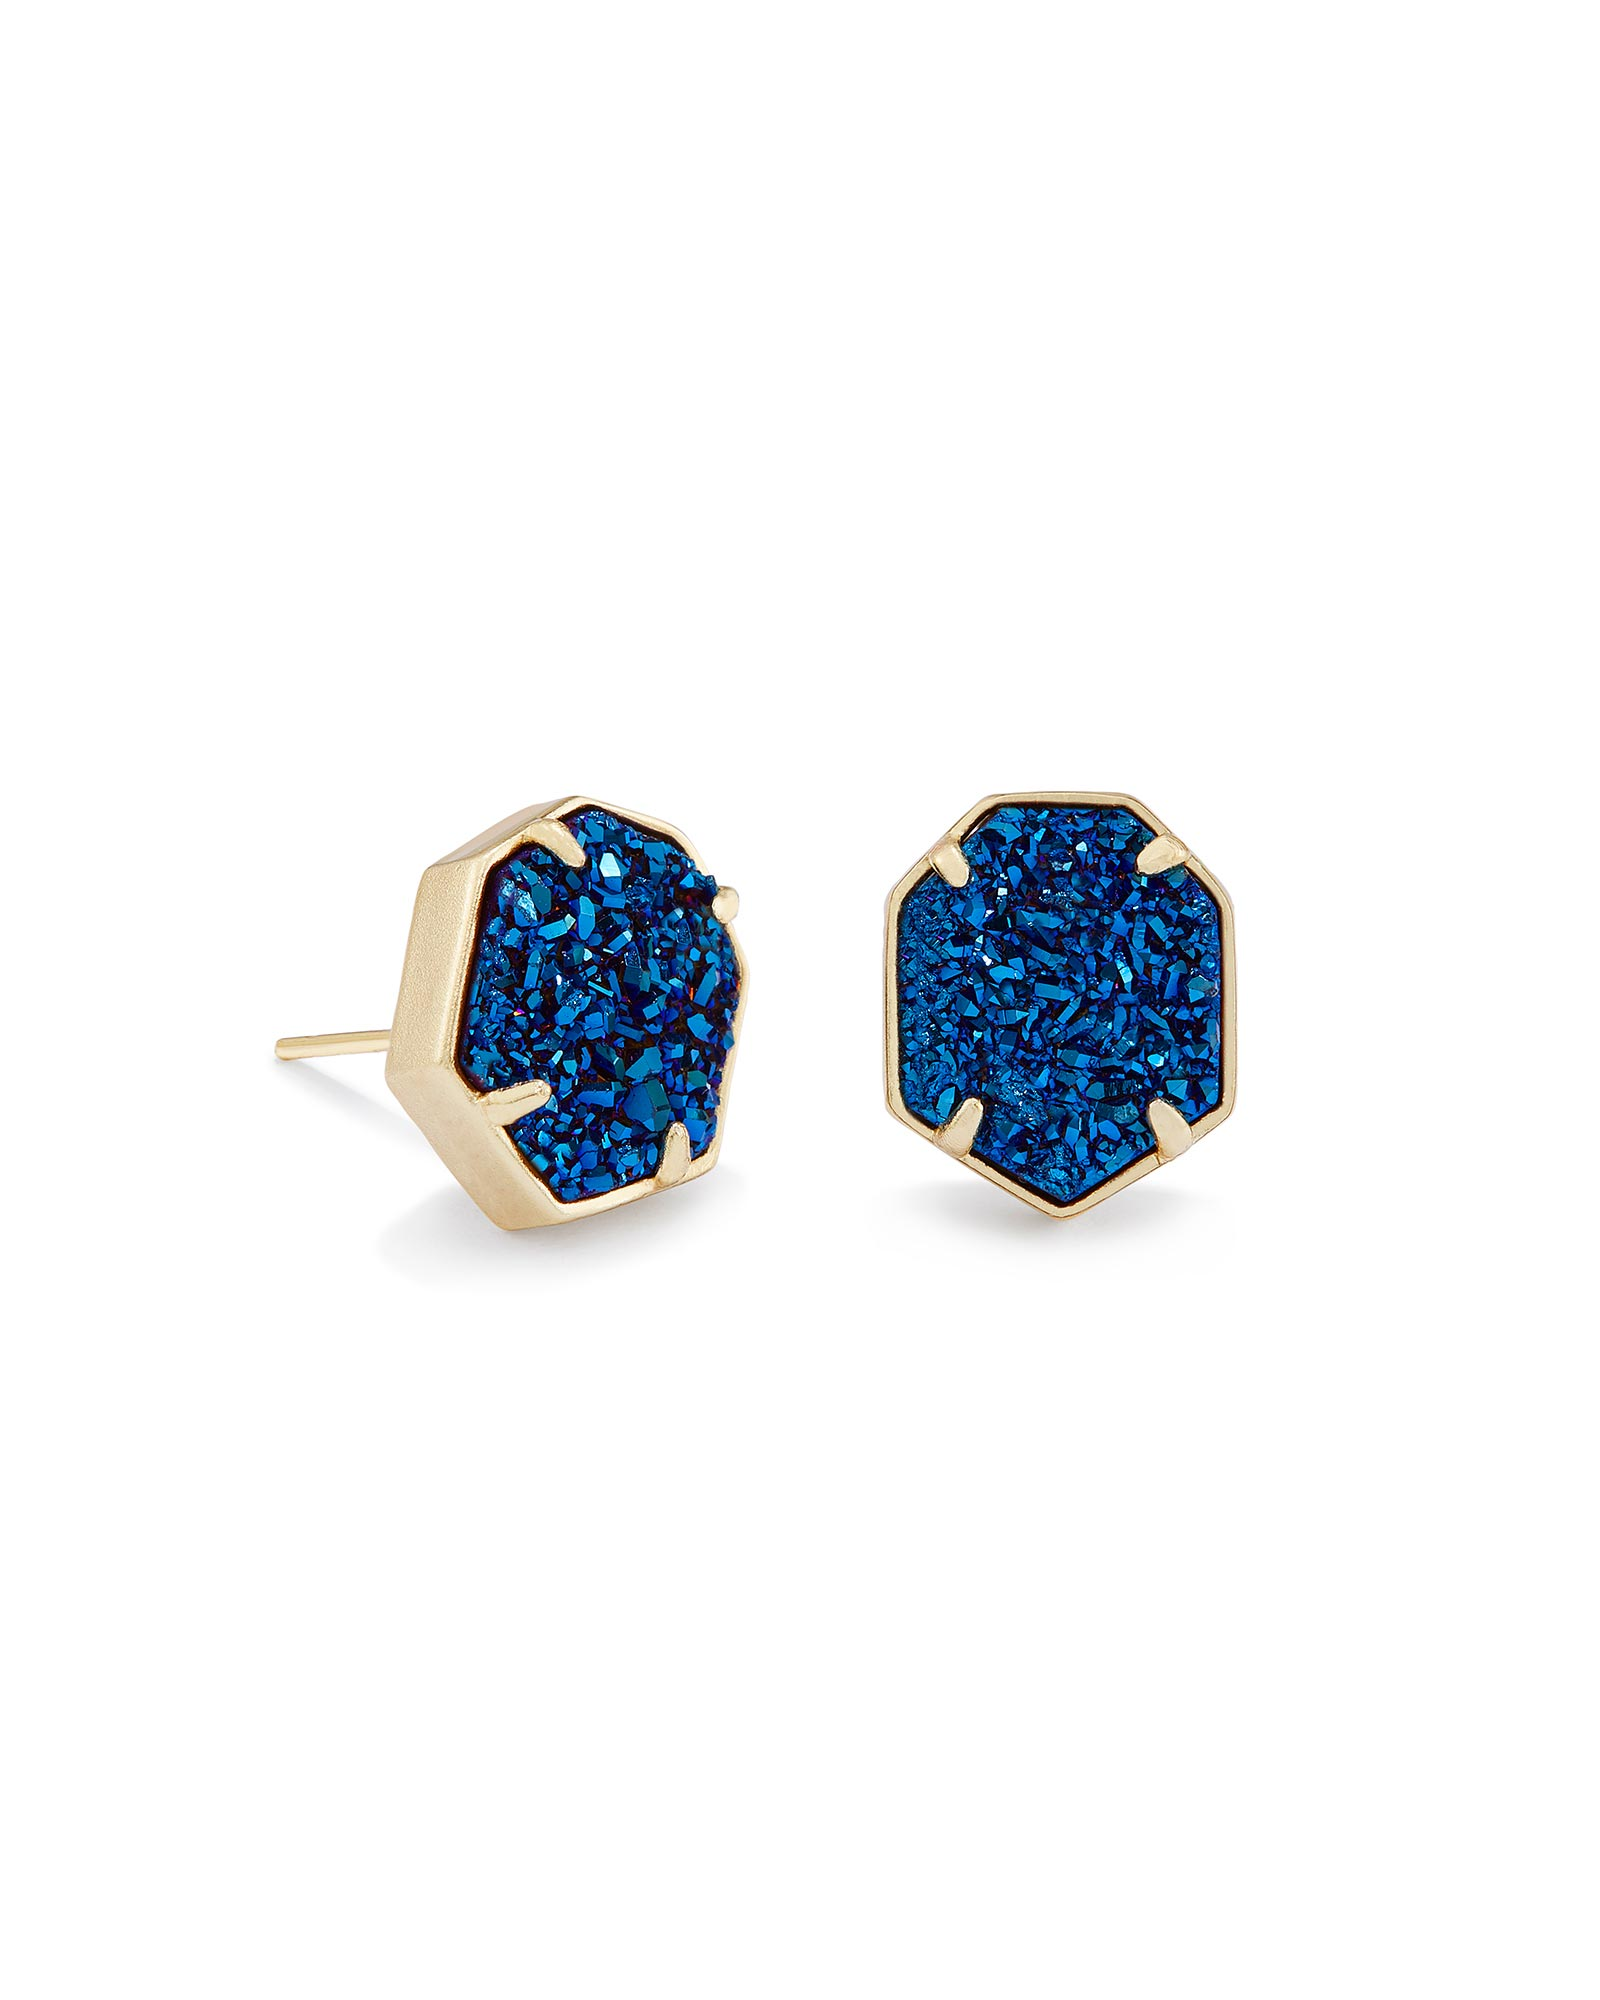 Taylor Stud Earrings In Blue Drusy